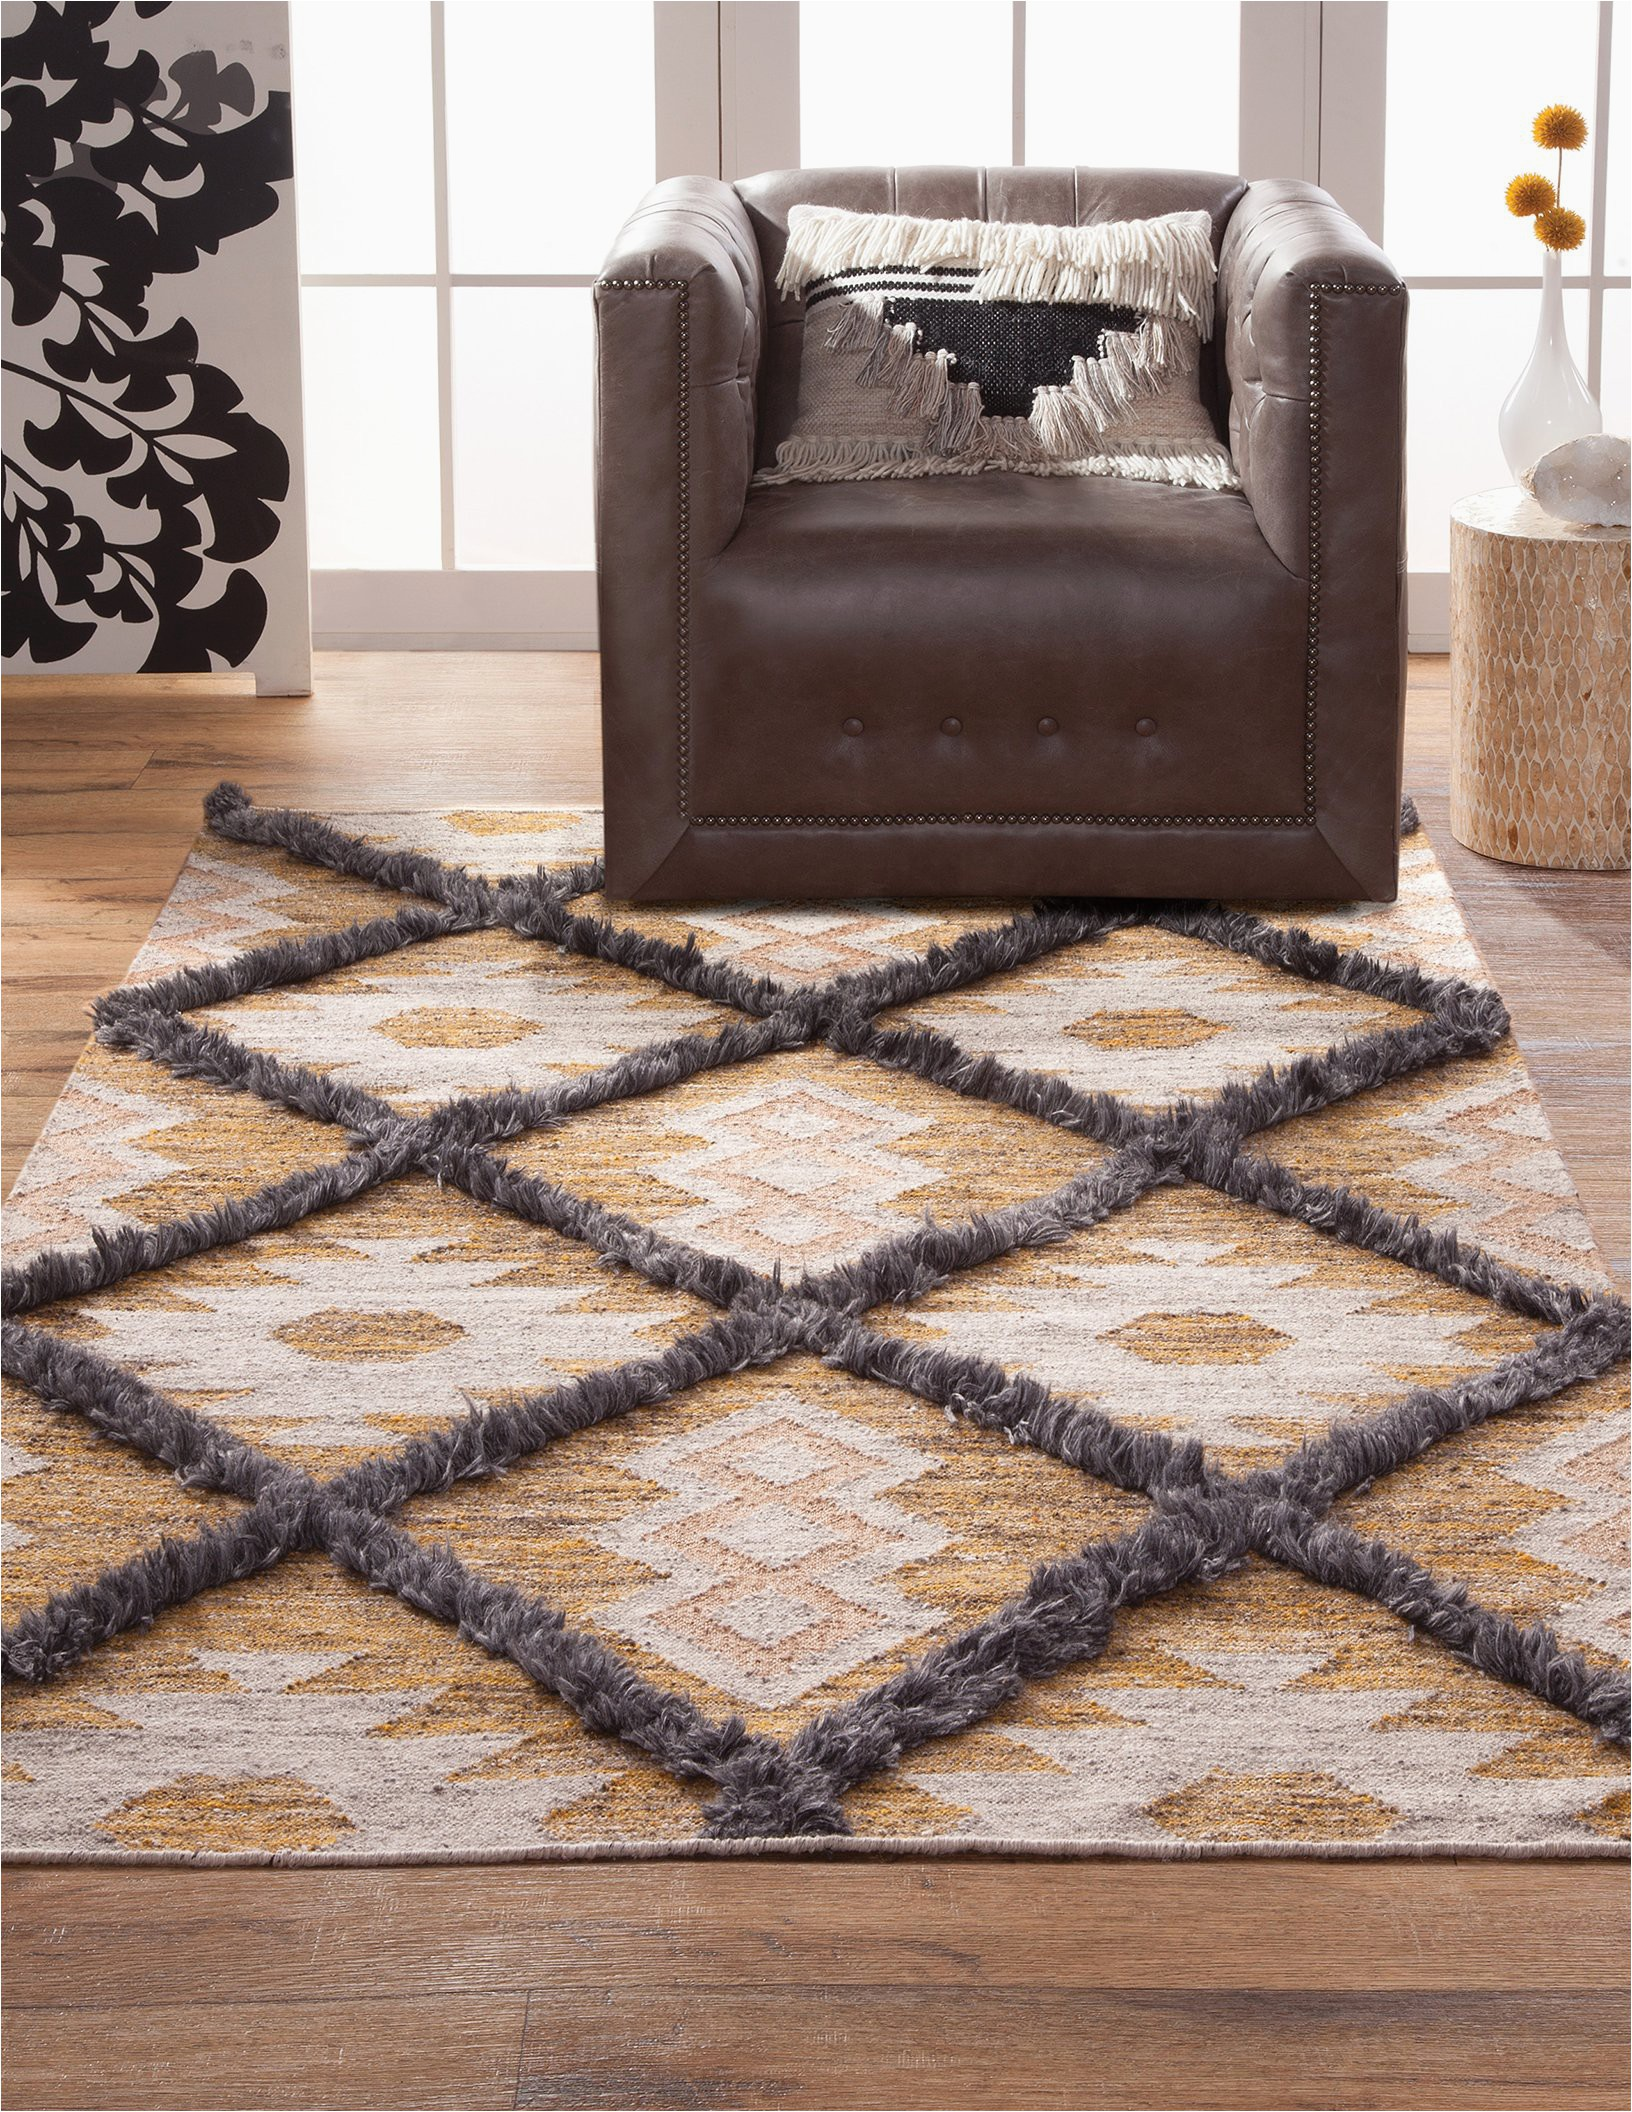 Southwest Boho Tan Ivory Gray Flatweave Wool Area Rug 2048x